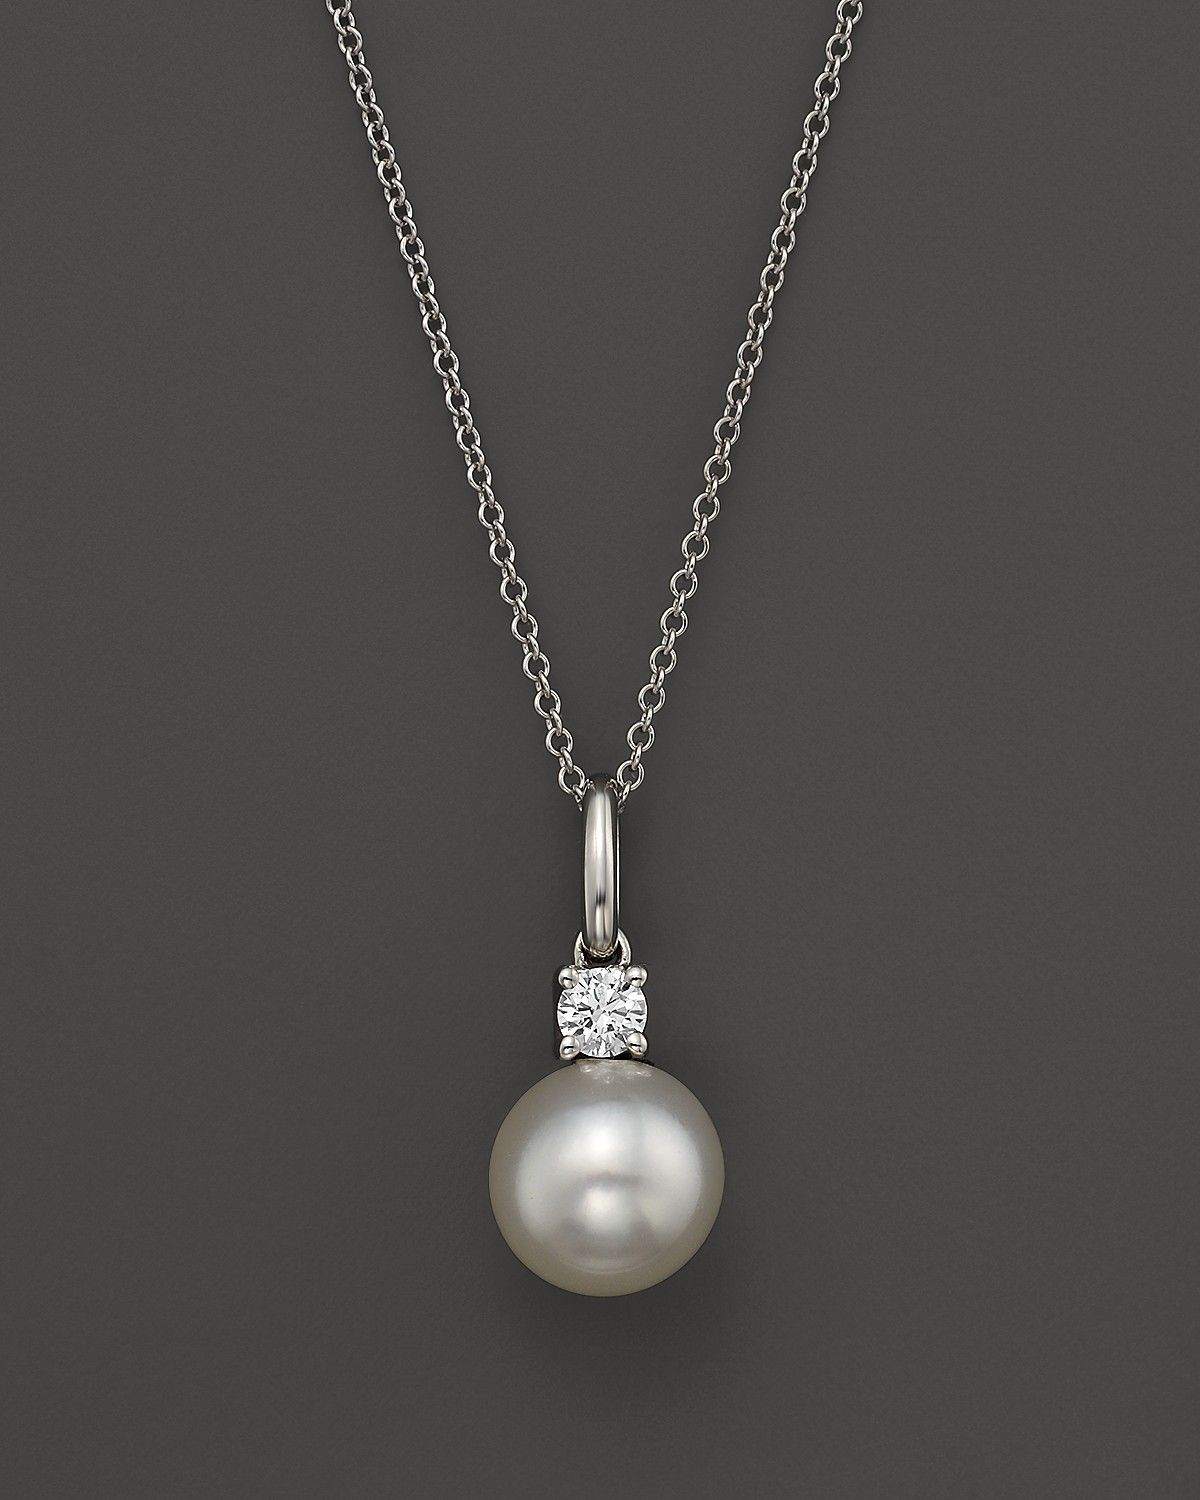 Cultured freshwater pearl and diamond pendant necklace in 18k white cultured freshwater pearl and diamond pendant necklace in 18k white gold 18 bloomingdales aloadofball Images